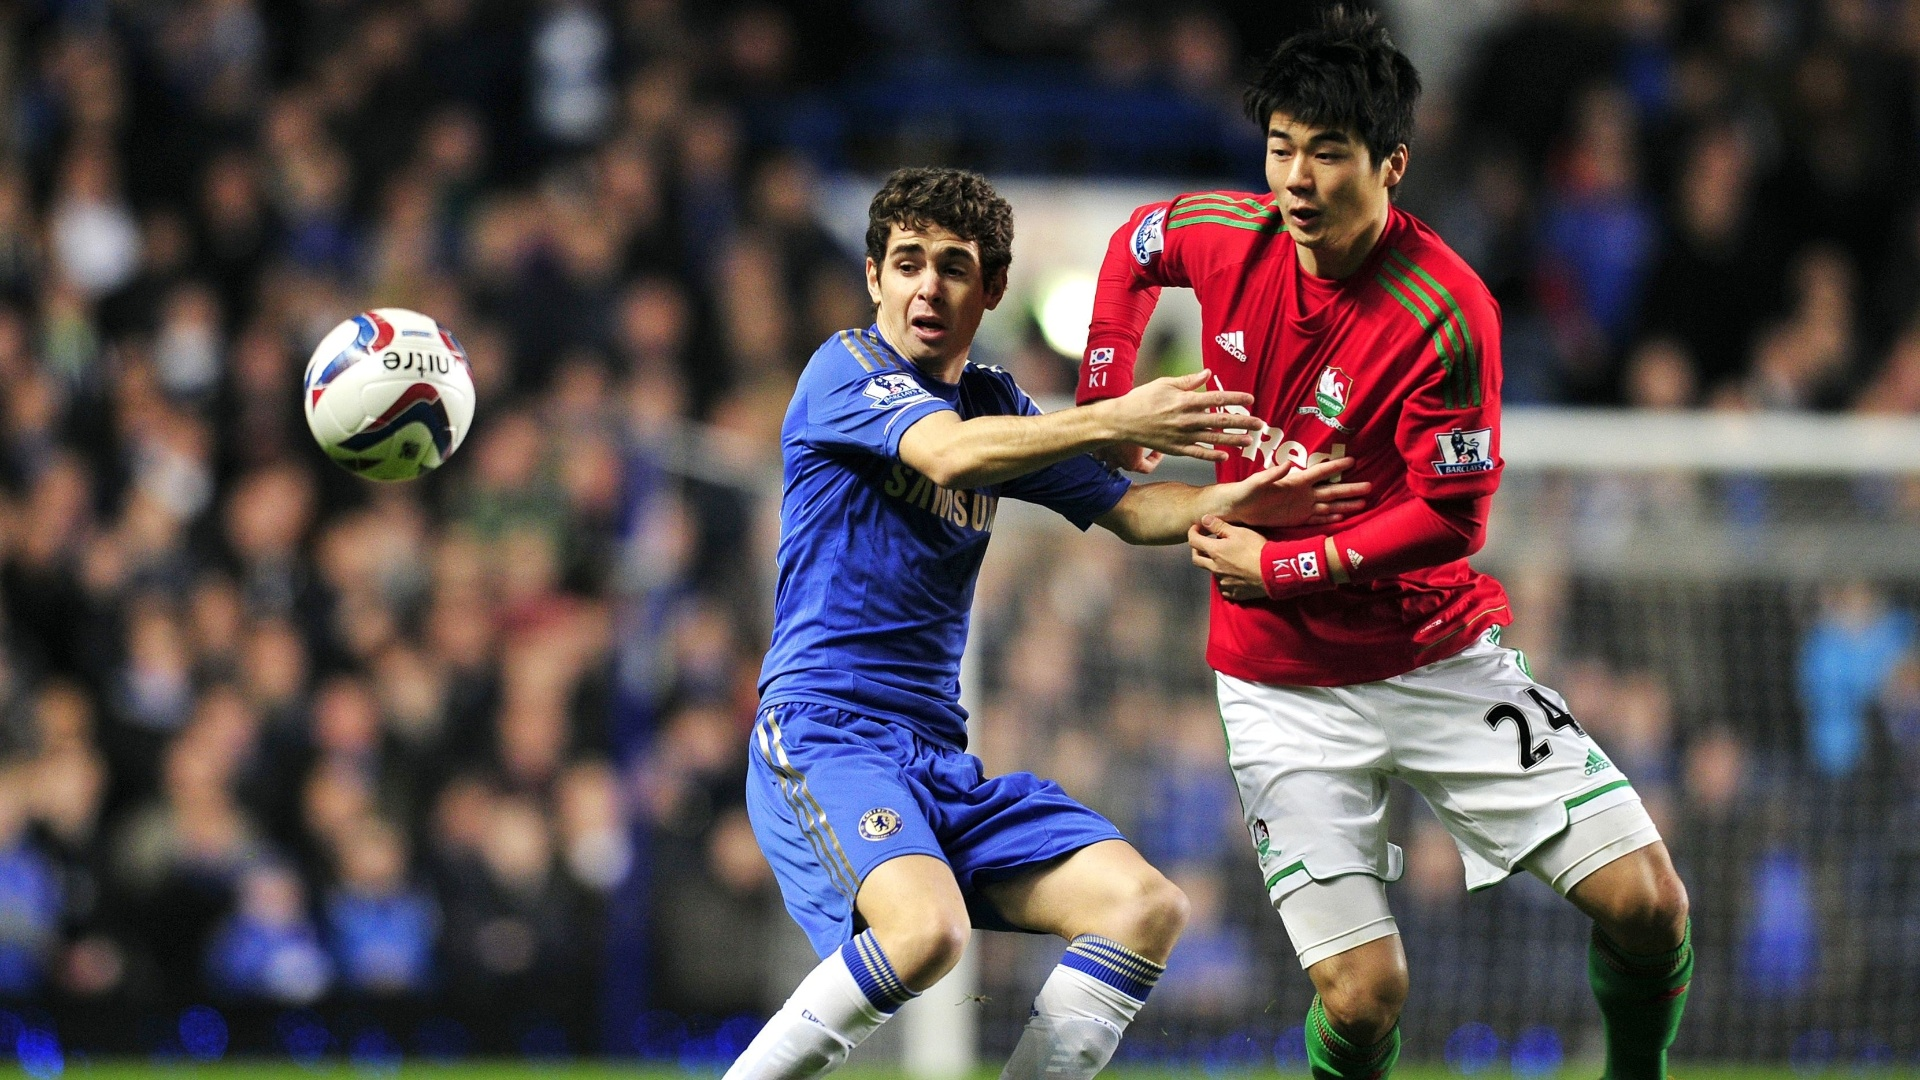 09.jan.2013 - Meia brasileiro Oscar, do Chelsea, disputa a posse da bola com Ki Sung-Yueng, do Swansea